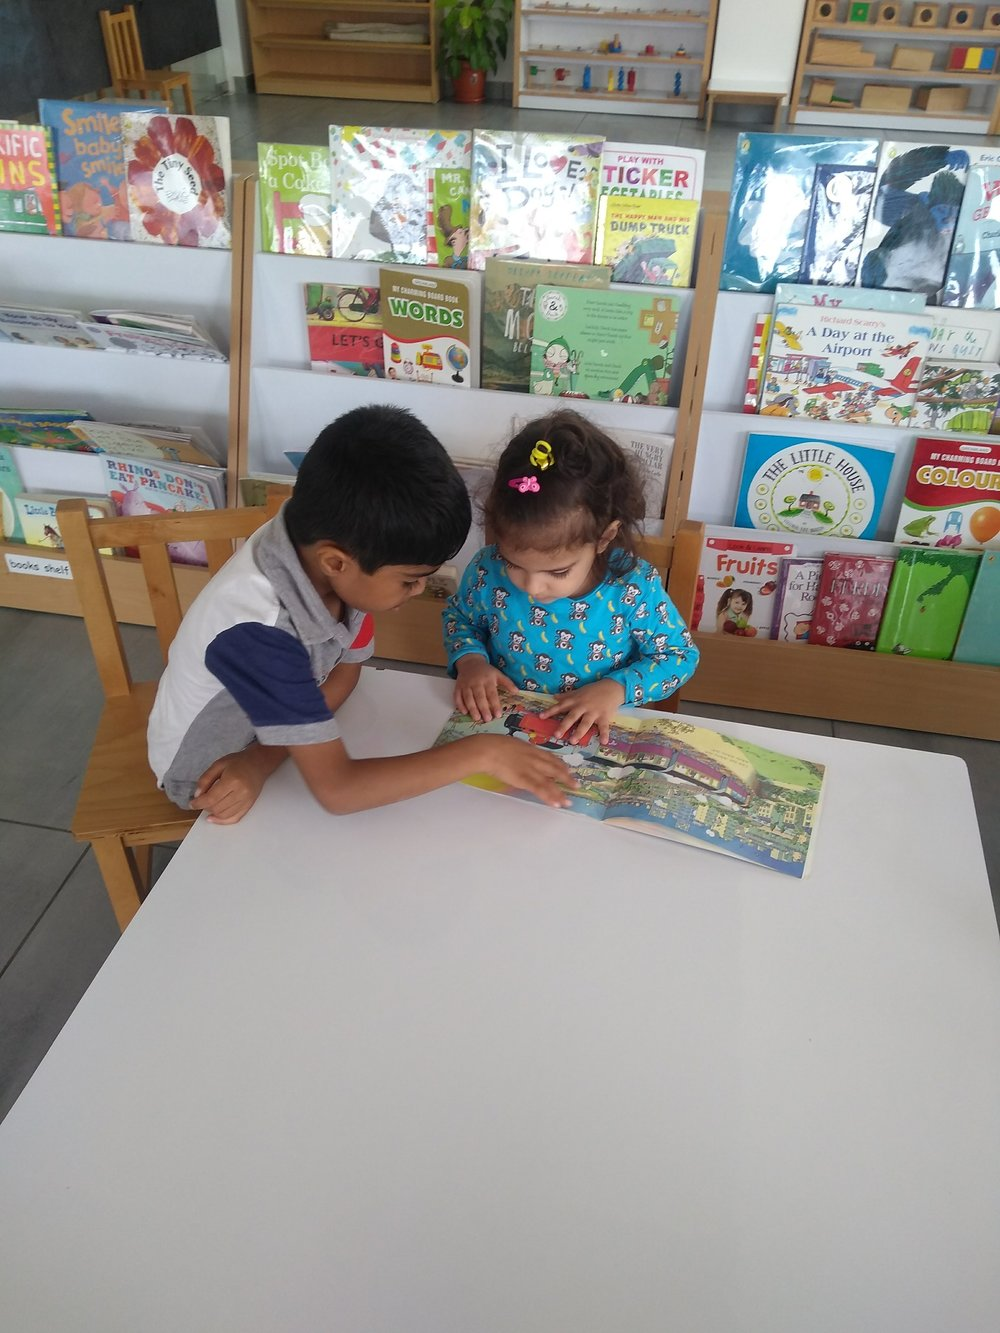 An older child helping a younger peer understand a story